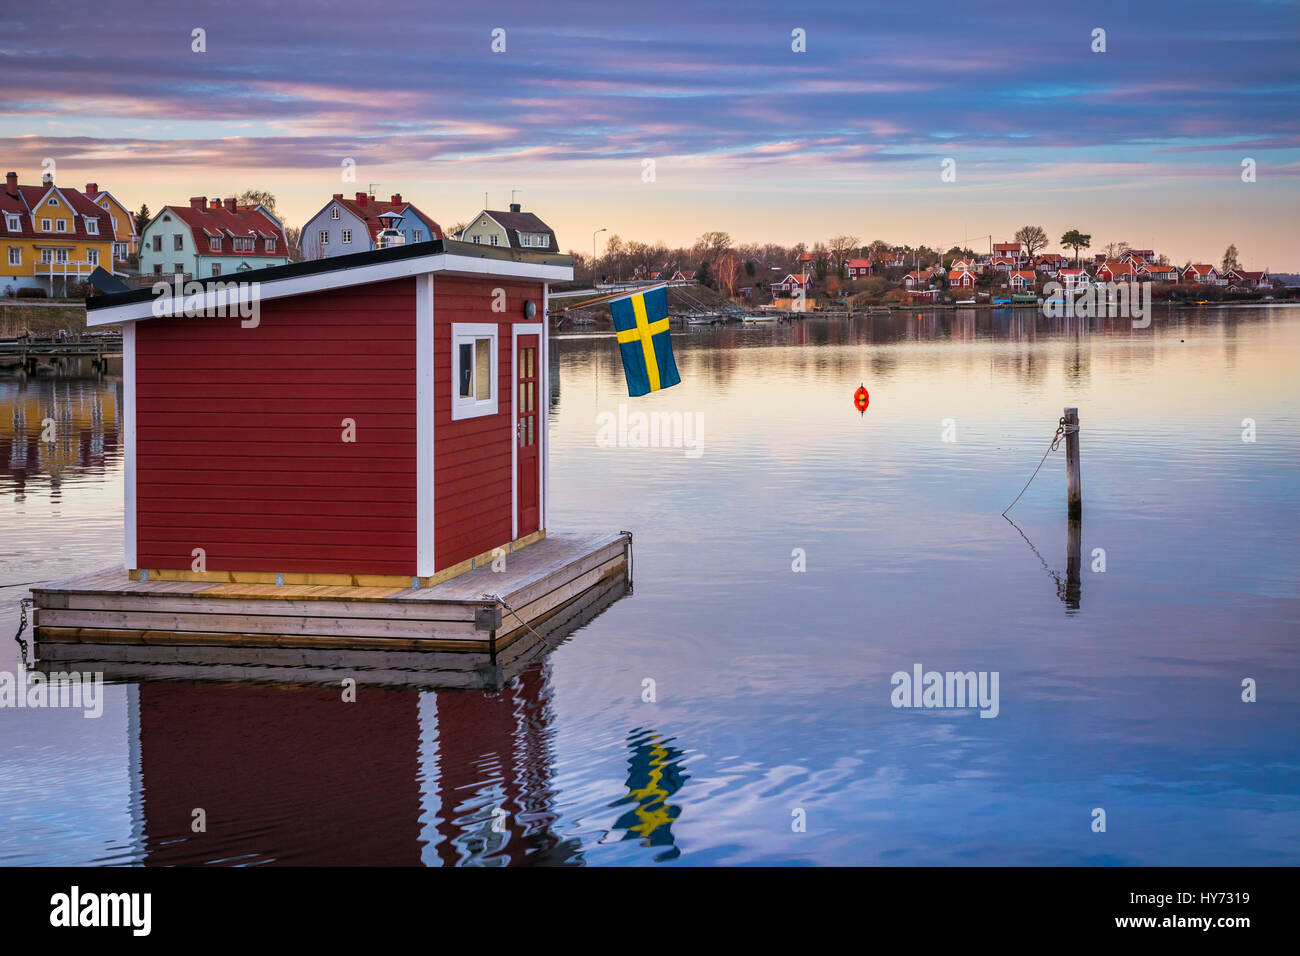 Floating sauna in Karlskona, Sweden ..... Karlskrona is a locality and the seat of Karlskrona Municipality, Blekinge - Stock Image